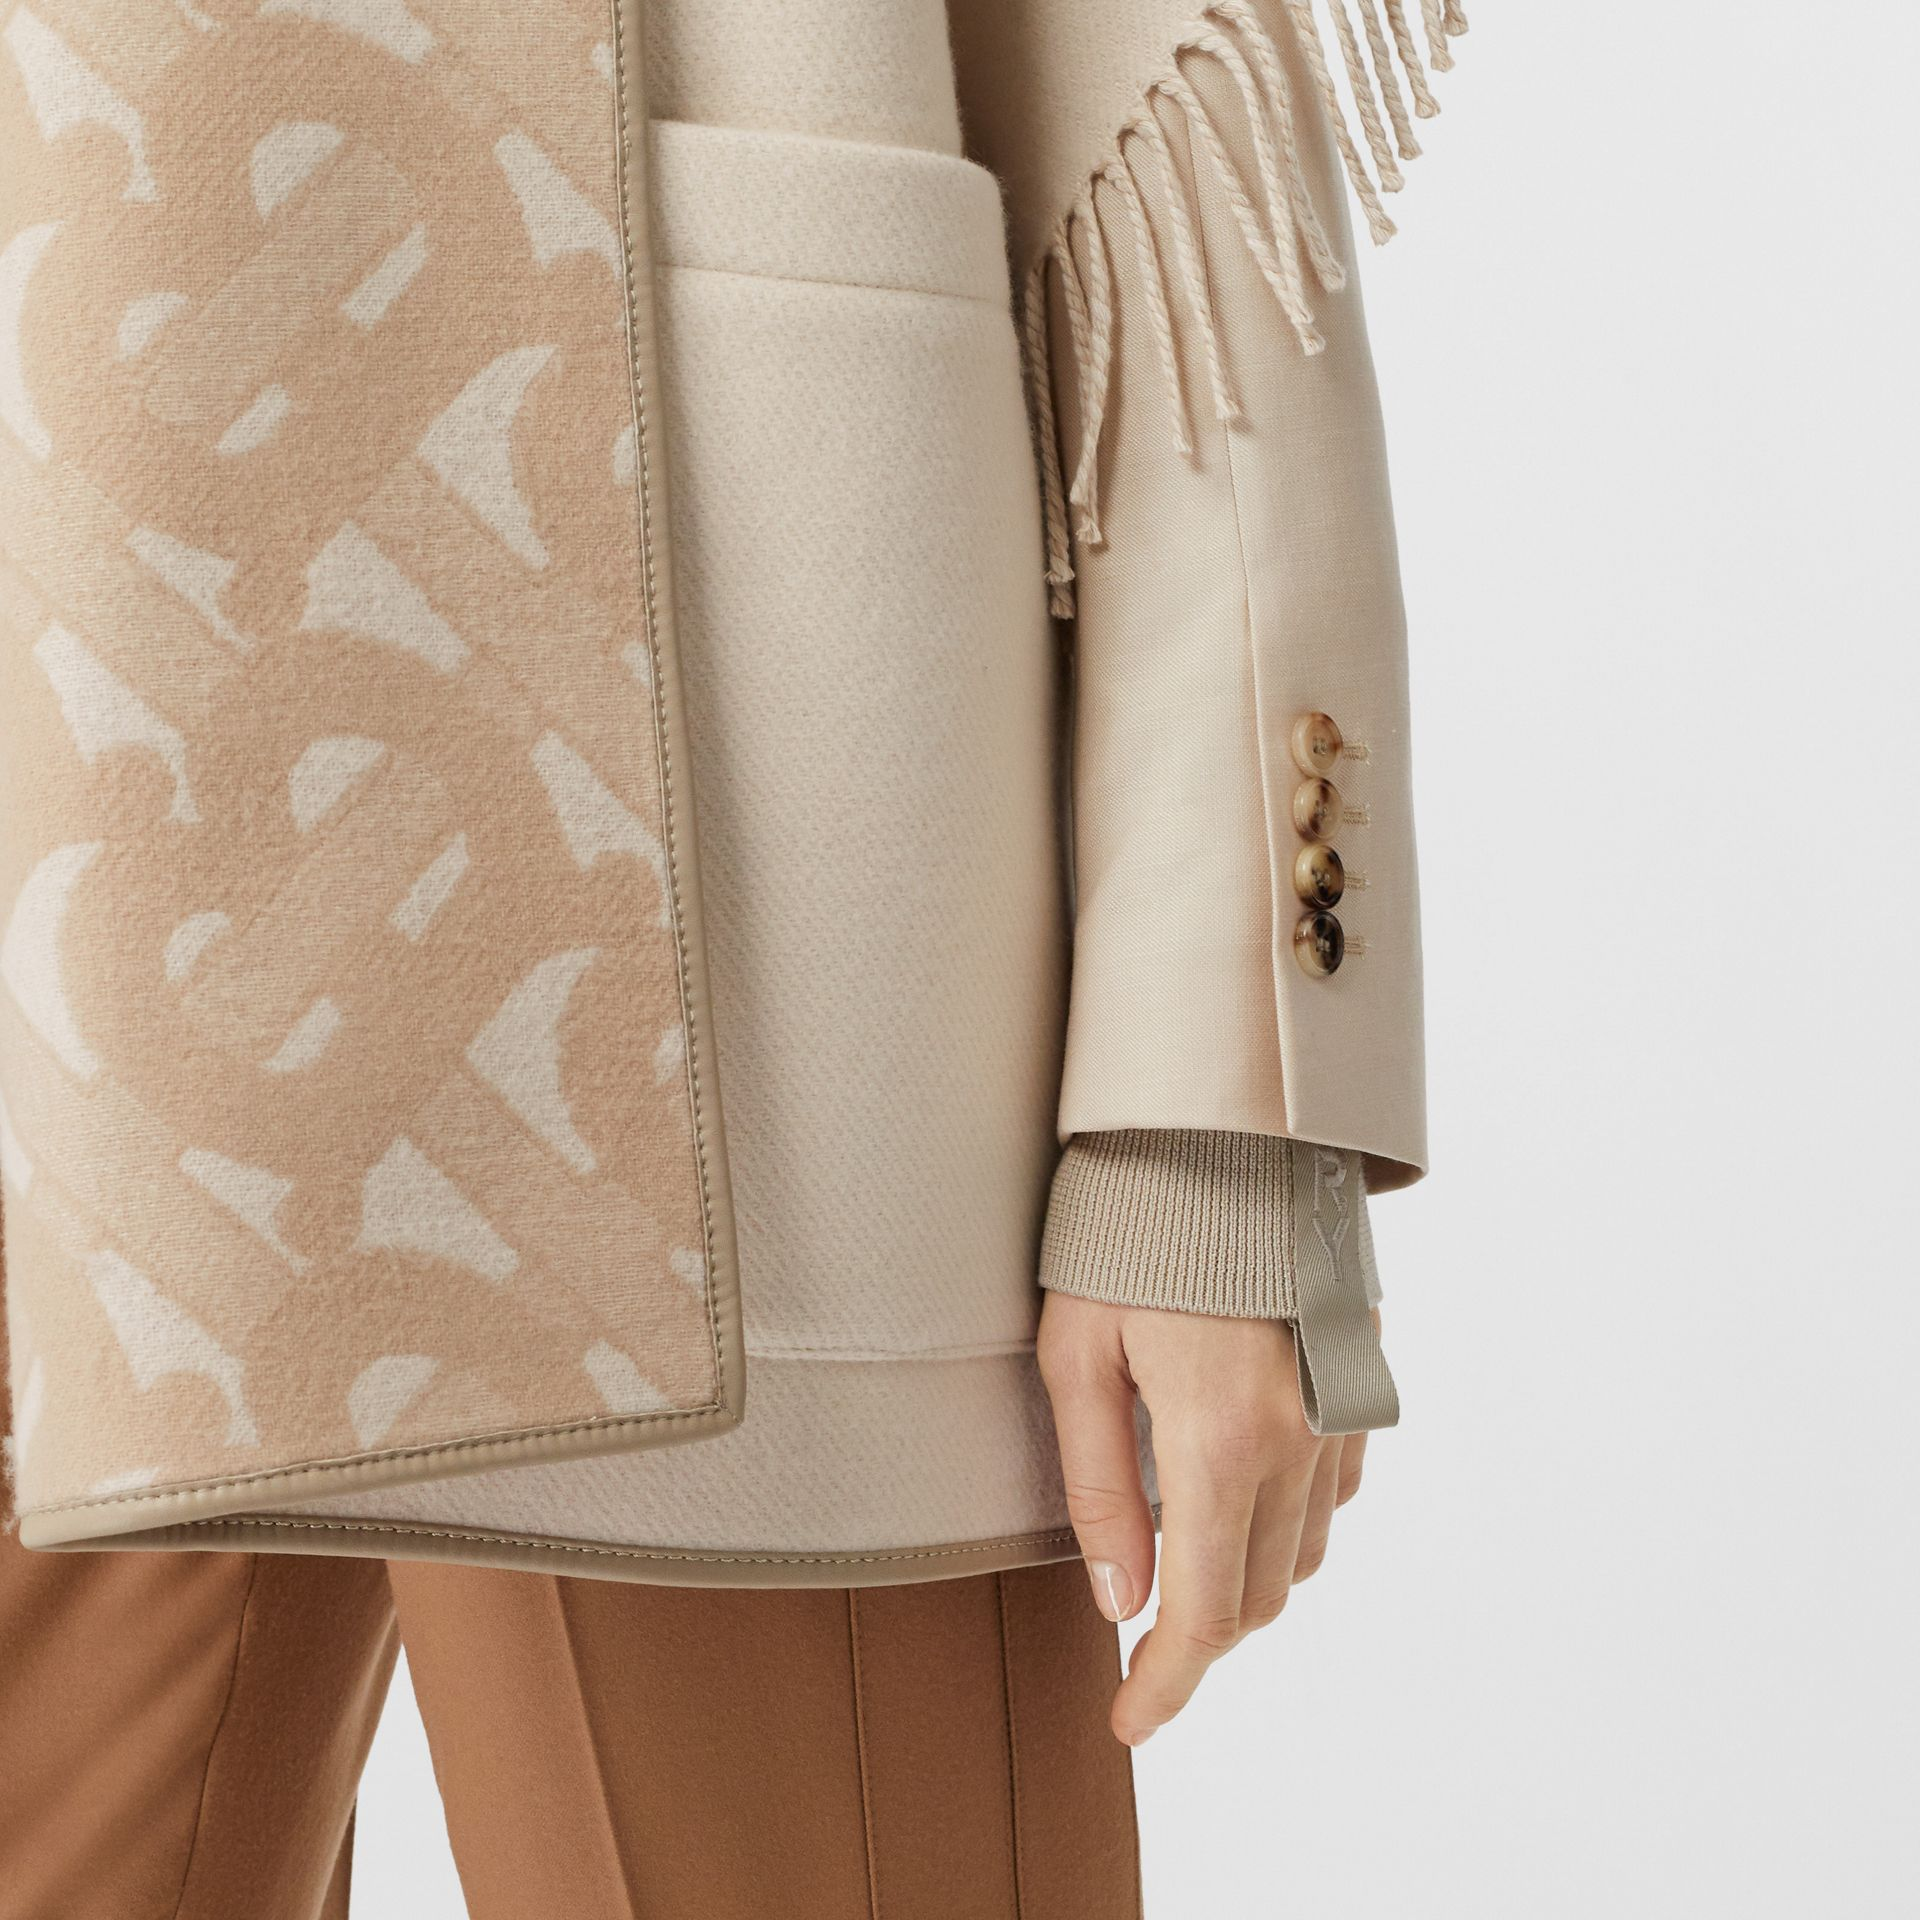 Monogram Merino Wool Cashmere Jacquard Cape in Soft Fawn - Women | Burberry United Kingdom - gallery image 4